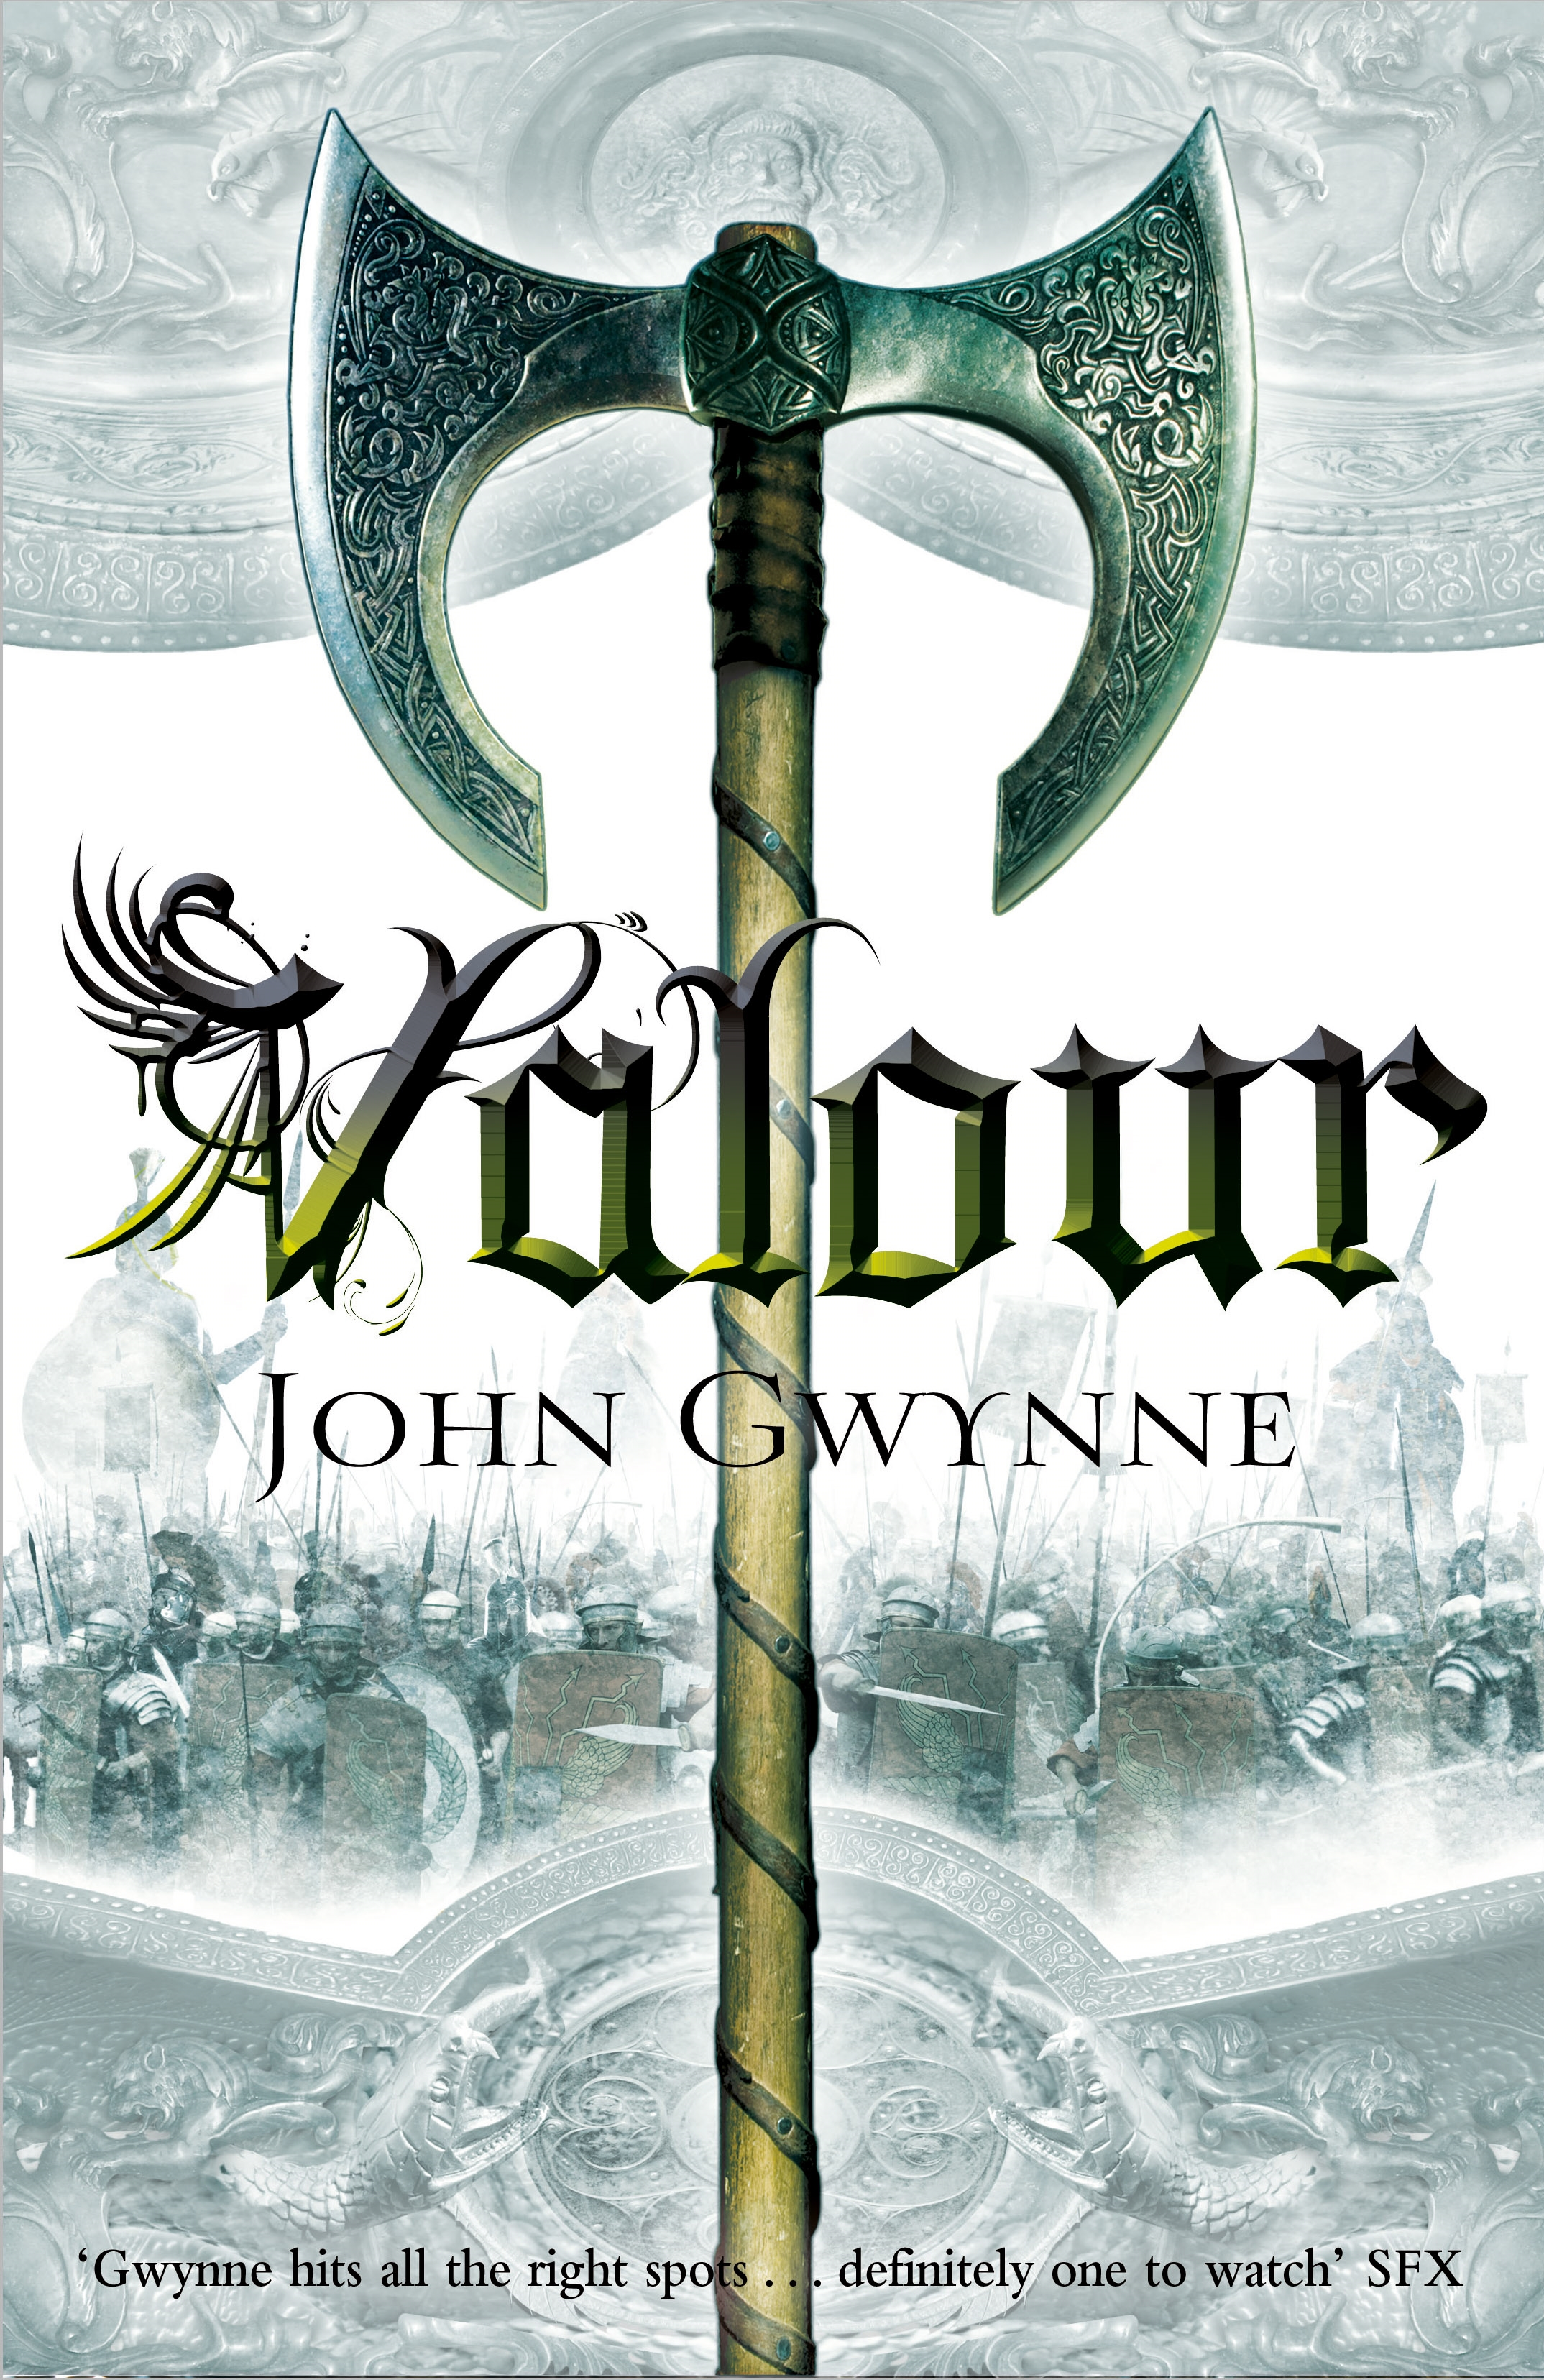 https://www.panmacmillan.com/authors/john-gwynne/valour